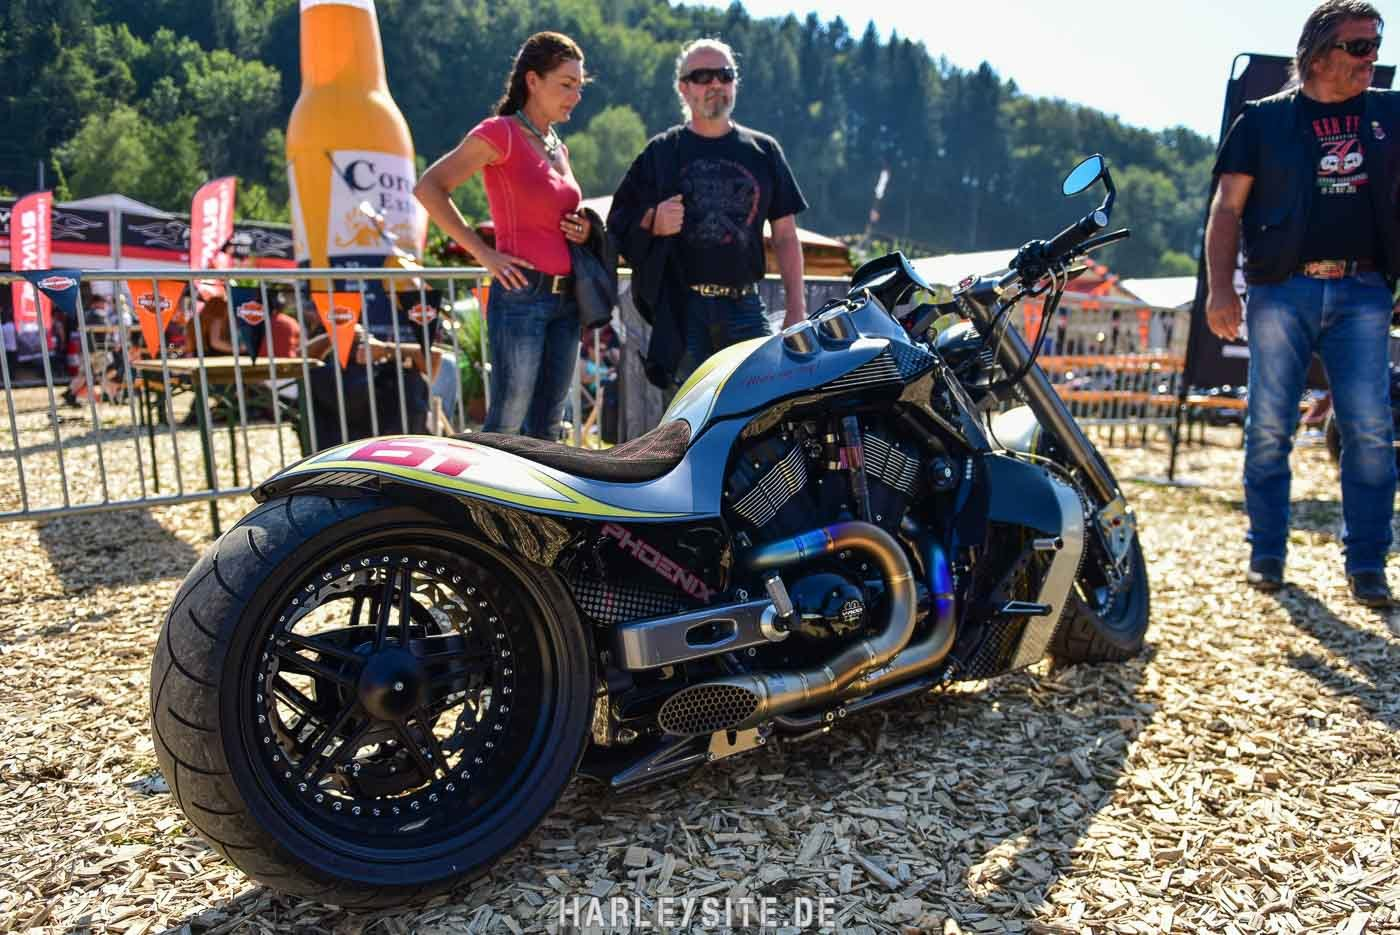 European-Bike-Week-63